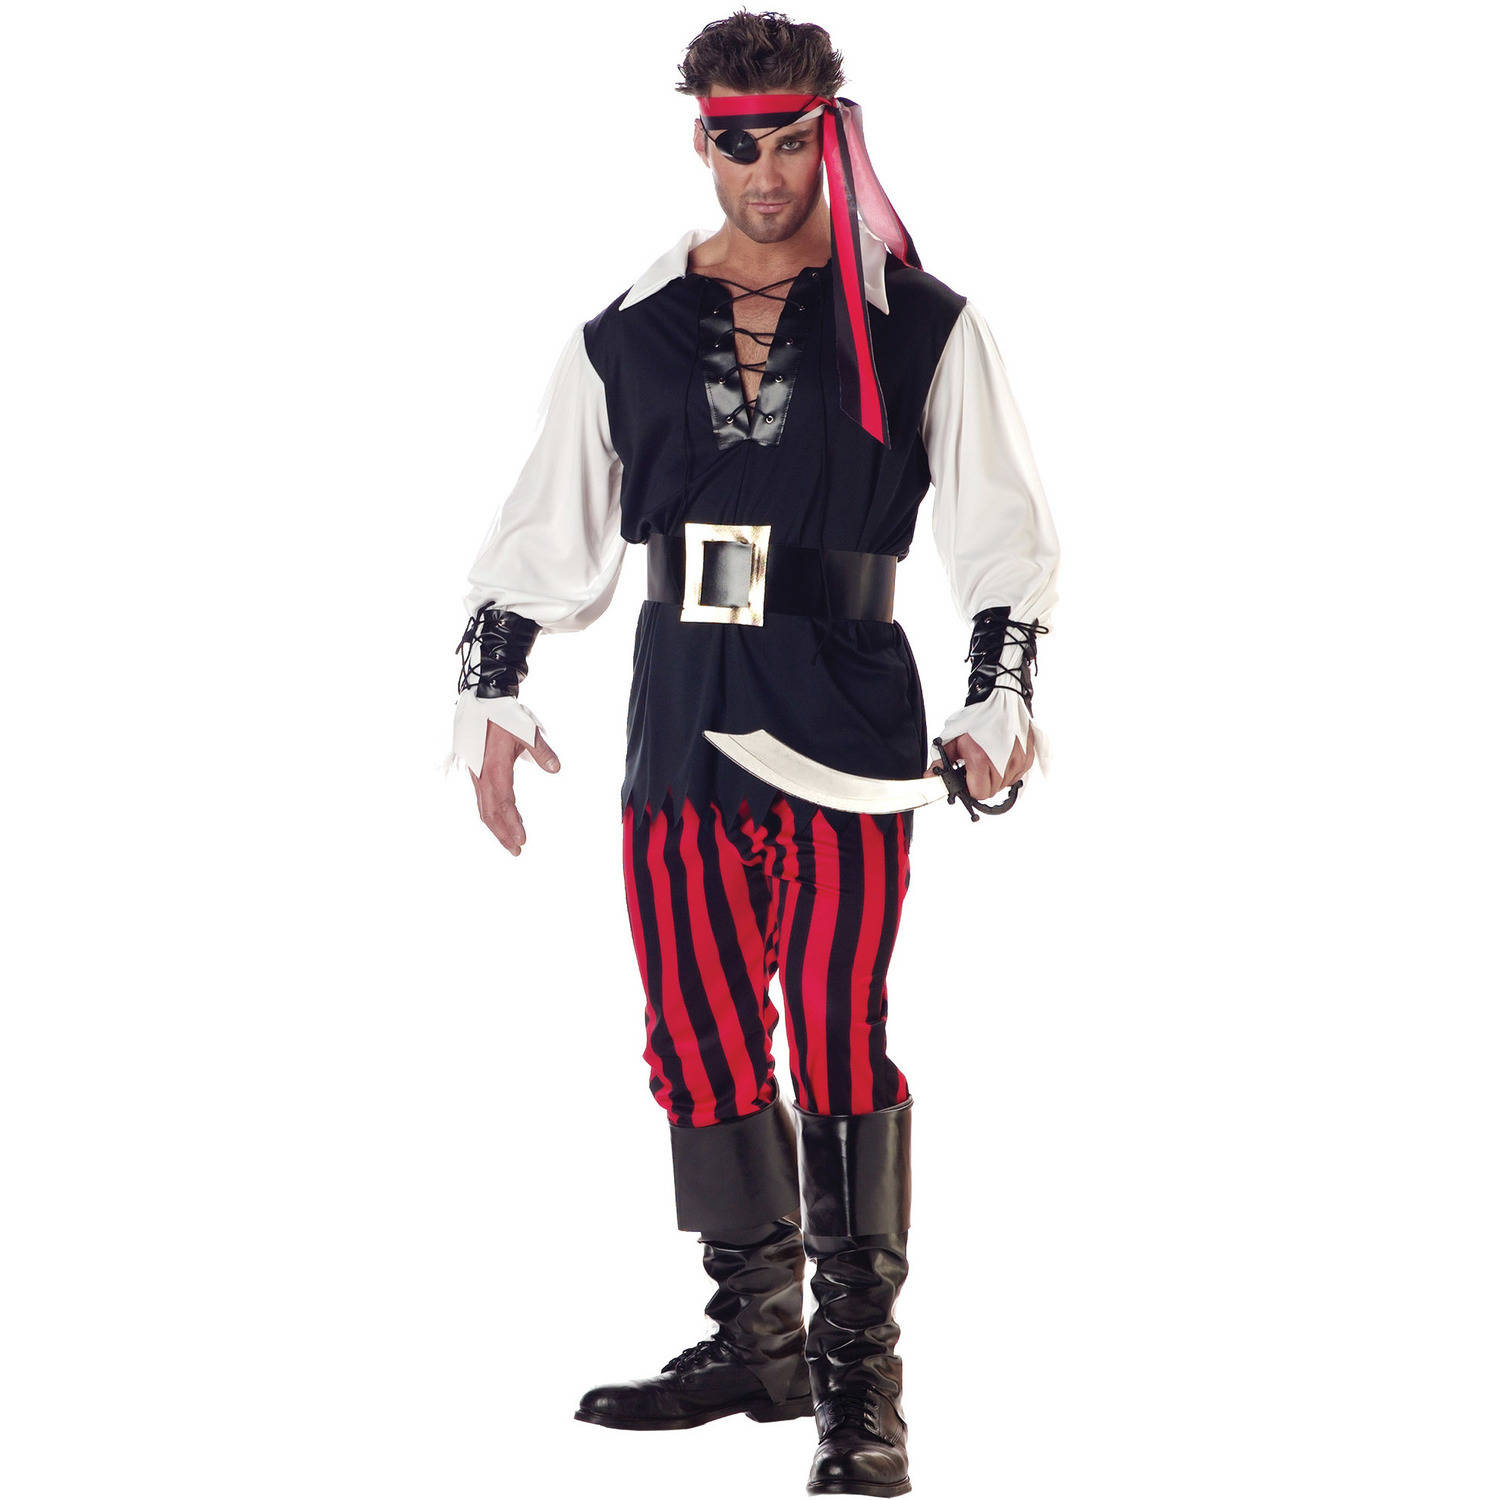 cutthroat pirate men's adult halloween costume - walmart